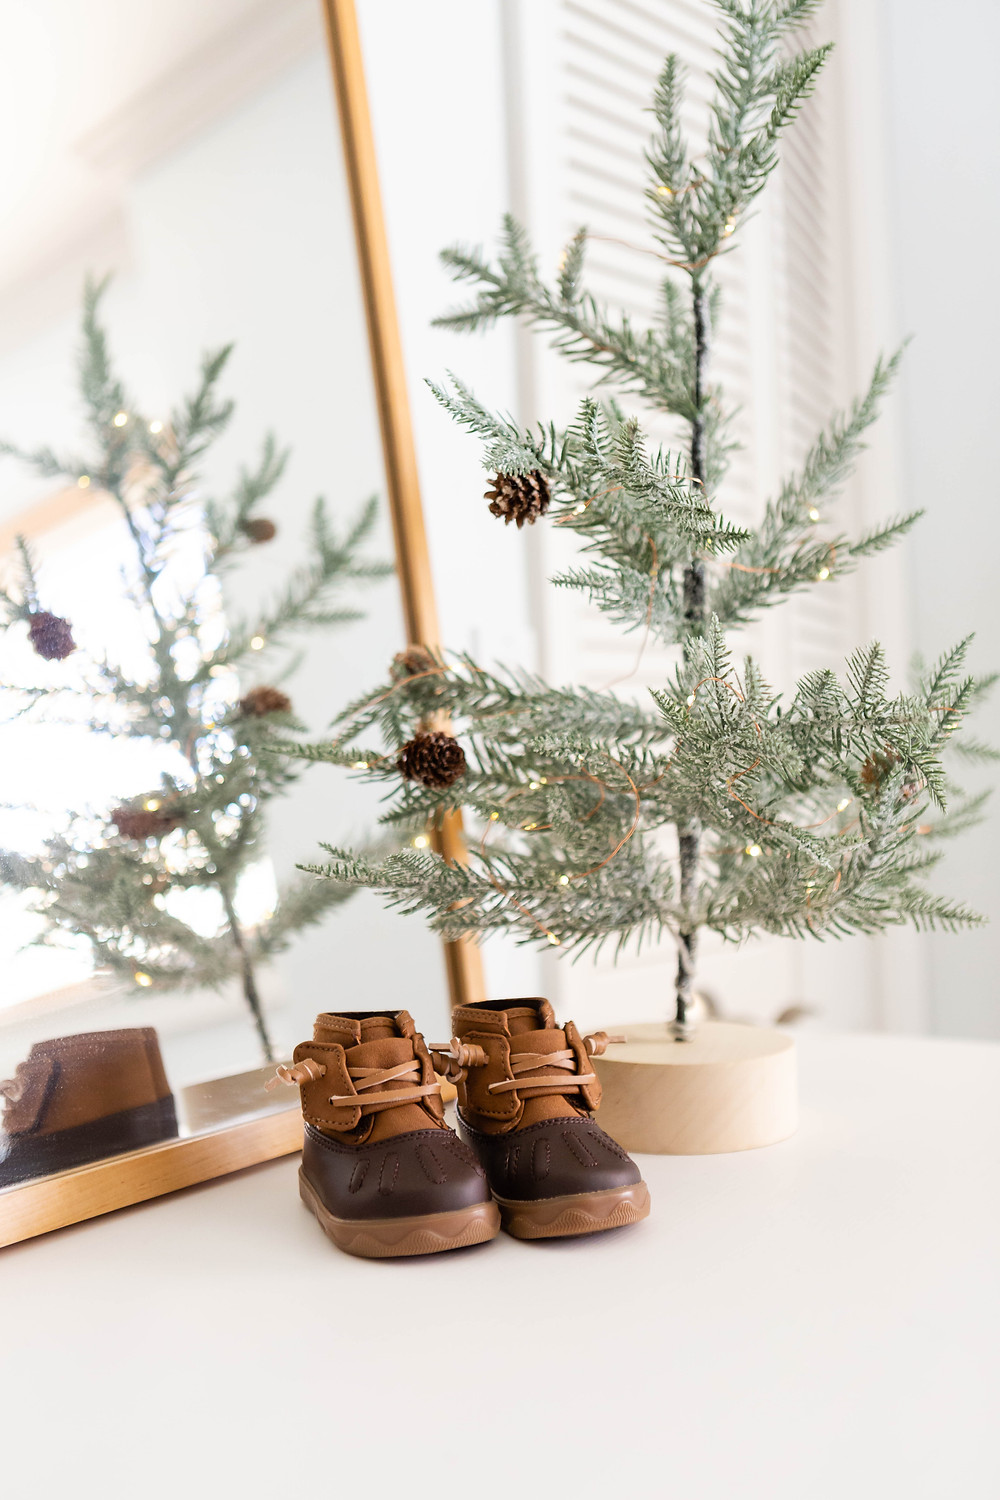 delicate sapling with fairy lights, baby duck boots, naturally framed mirror, California nursery decor